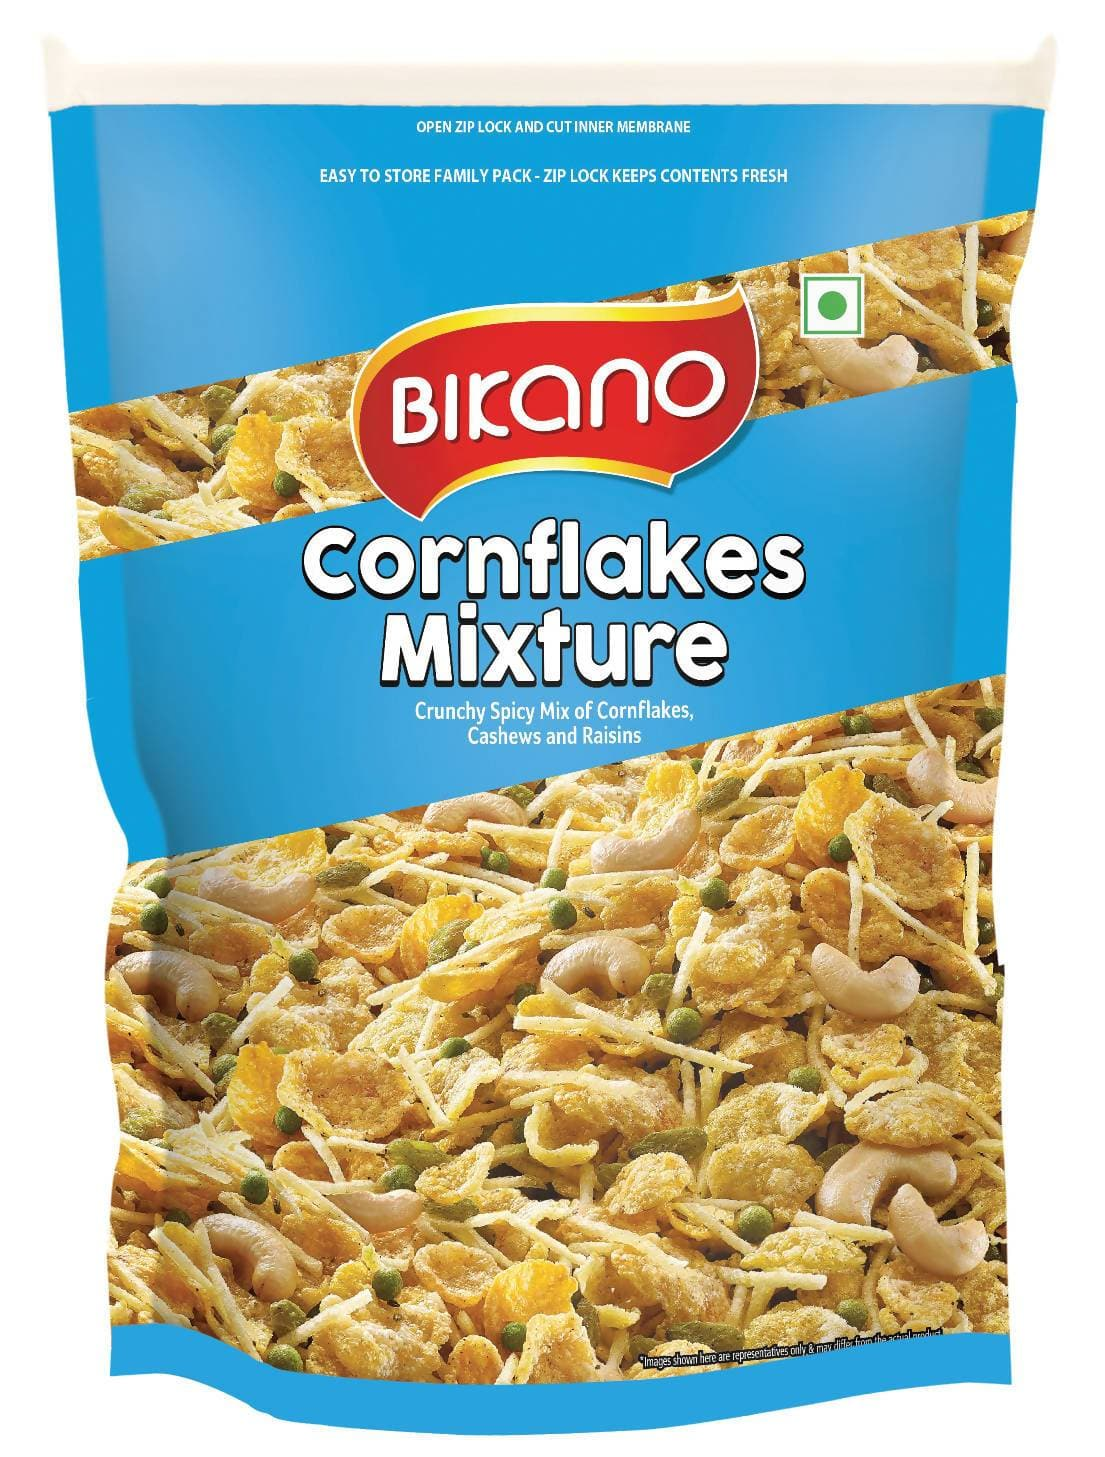 Bikano Cornflakes Mixture